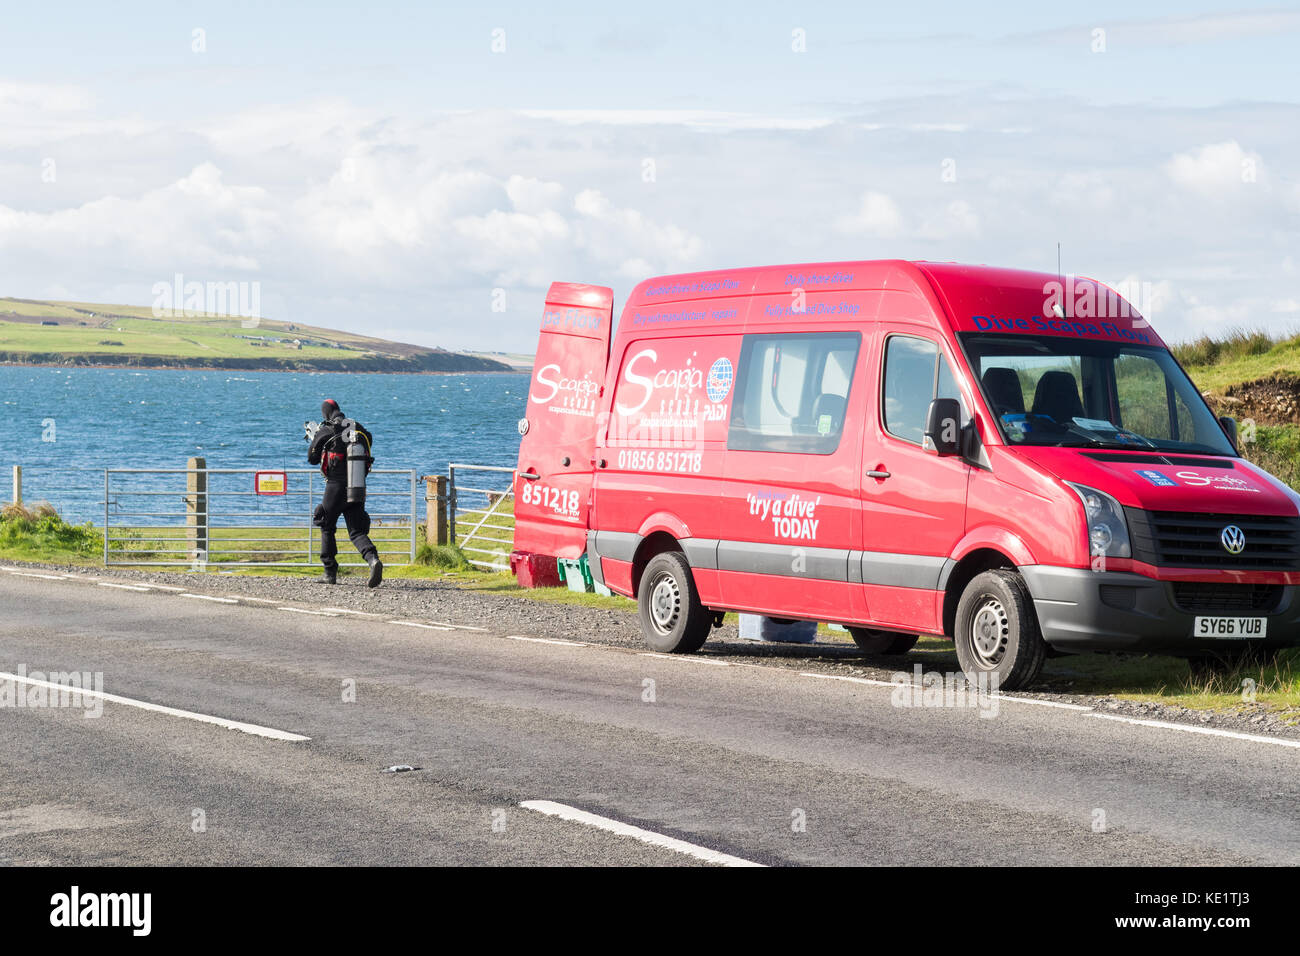 Scapa Flow diving holidays - diver and Scapa Scuba minibus at Glims Holm, Weddell Sound, Scapa Flow, Orkney Islands, - Stock Image